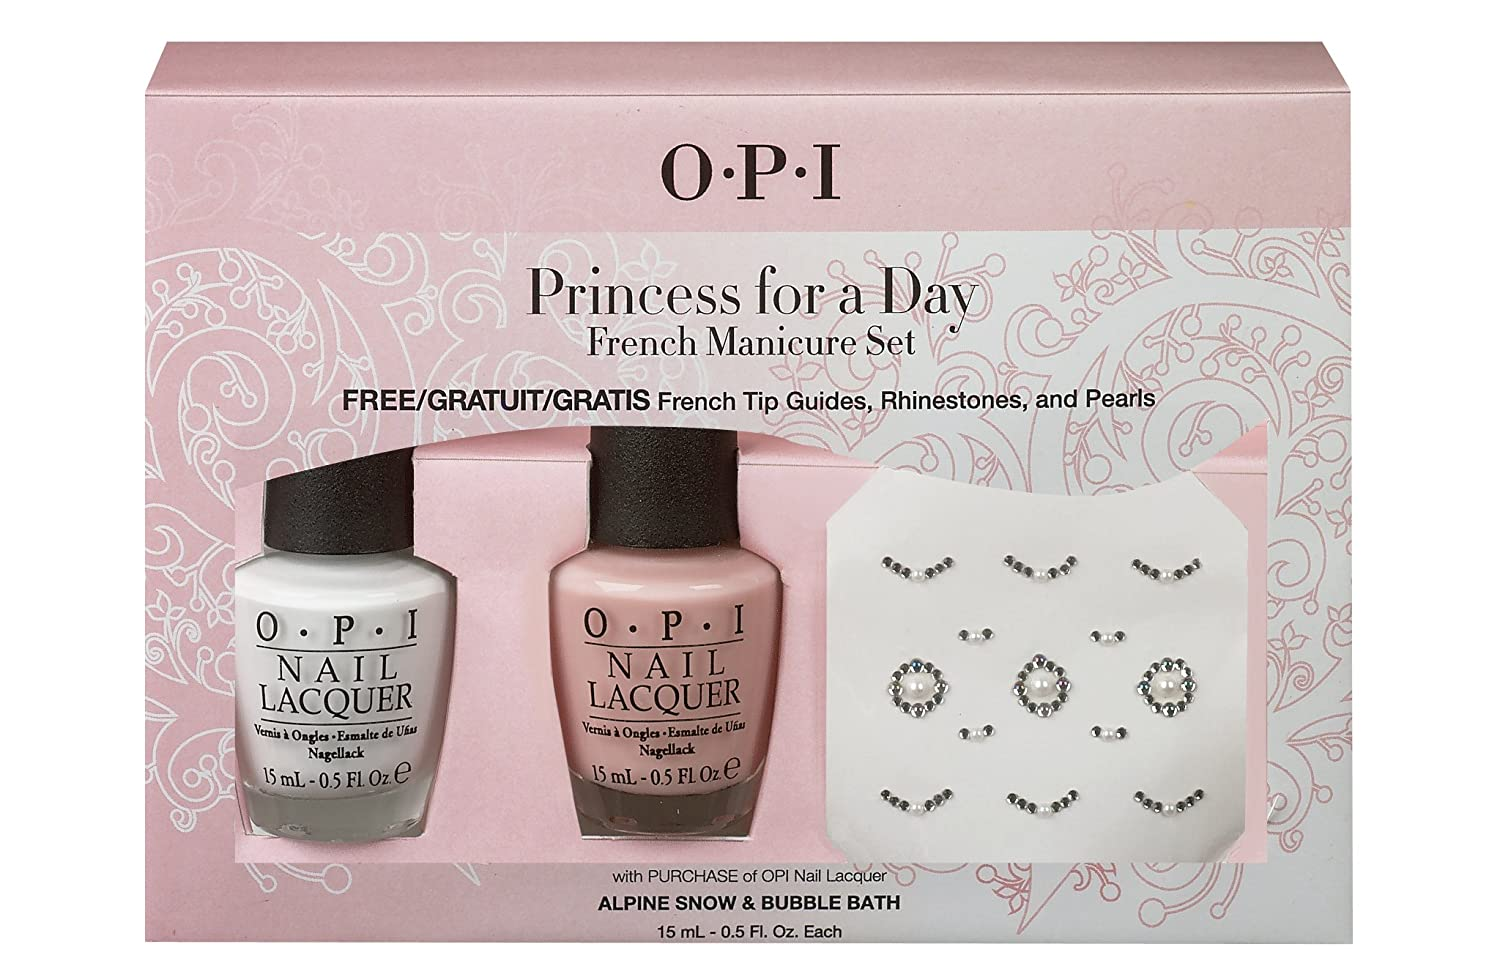 OPI Nail Lacquer - French Manicure Set - Princess For A Day - FREE ...